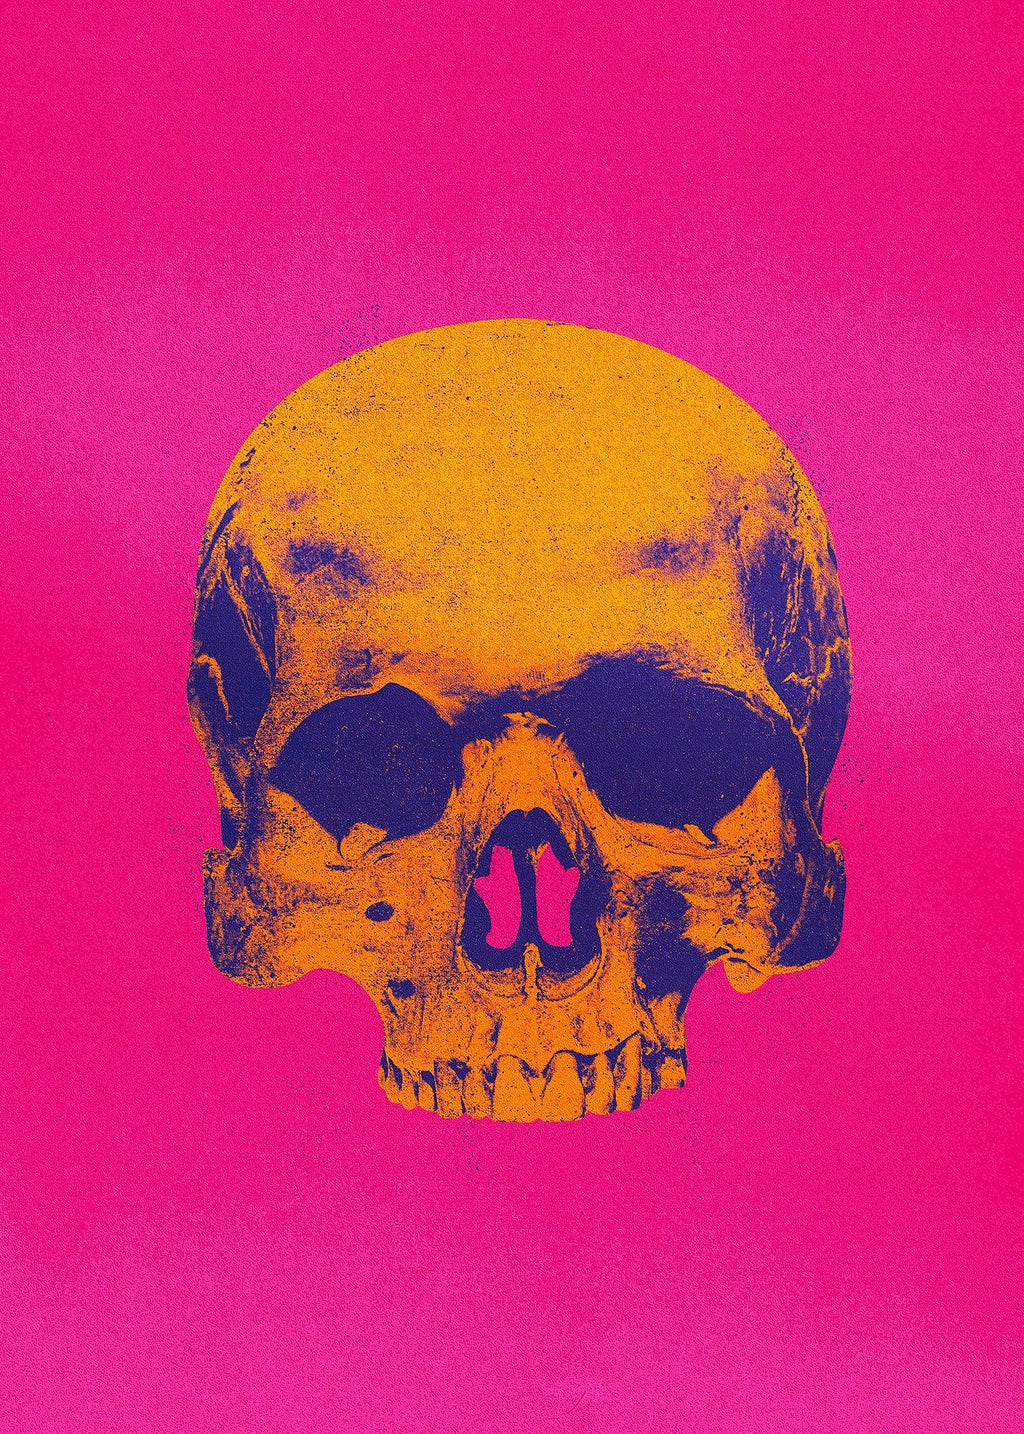 Pop Art Warhol Style Pink & Orange Skull Print